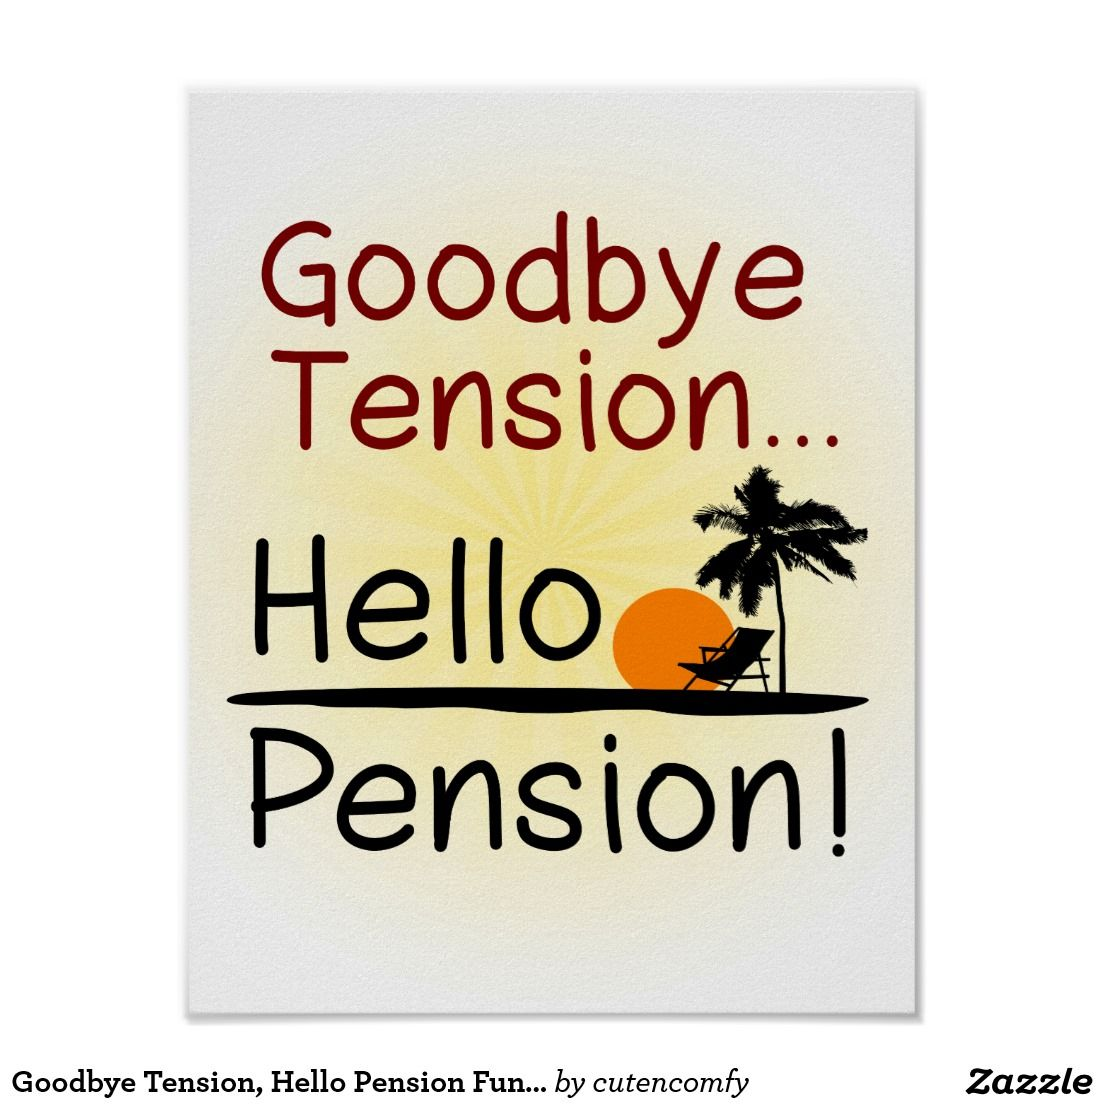 Goodbye Tension Hello Pension Funny Retirement Poster Zazzle Co Nz Retirement Wishes Quotes Retirement Quotes Funny Retirement Quotes For Coworkers